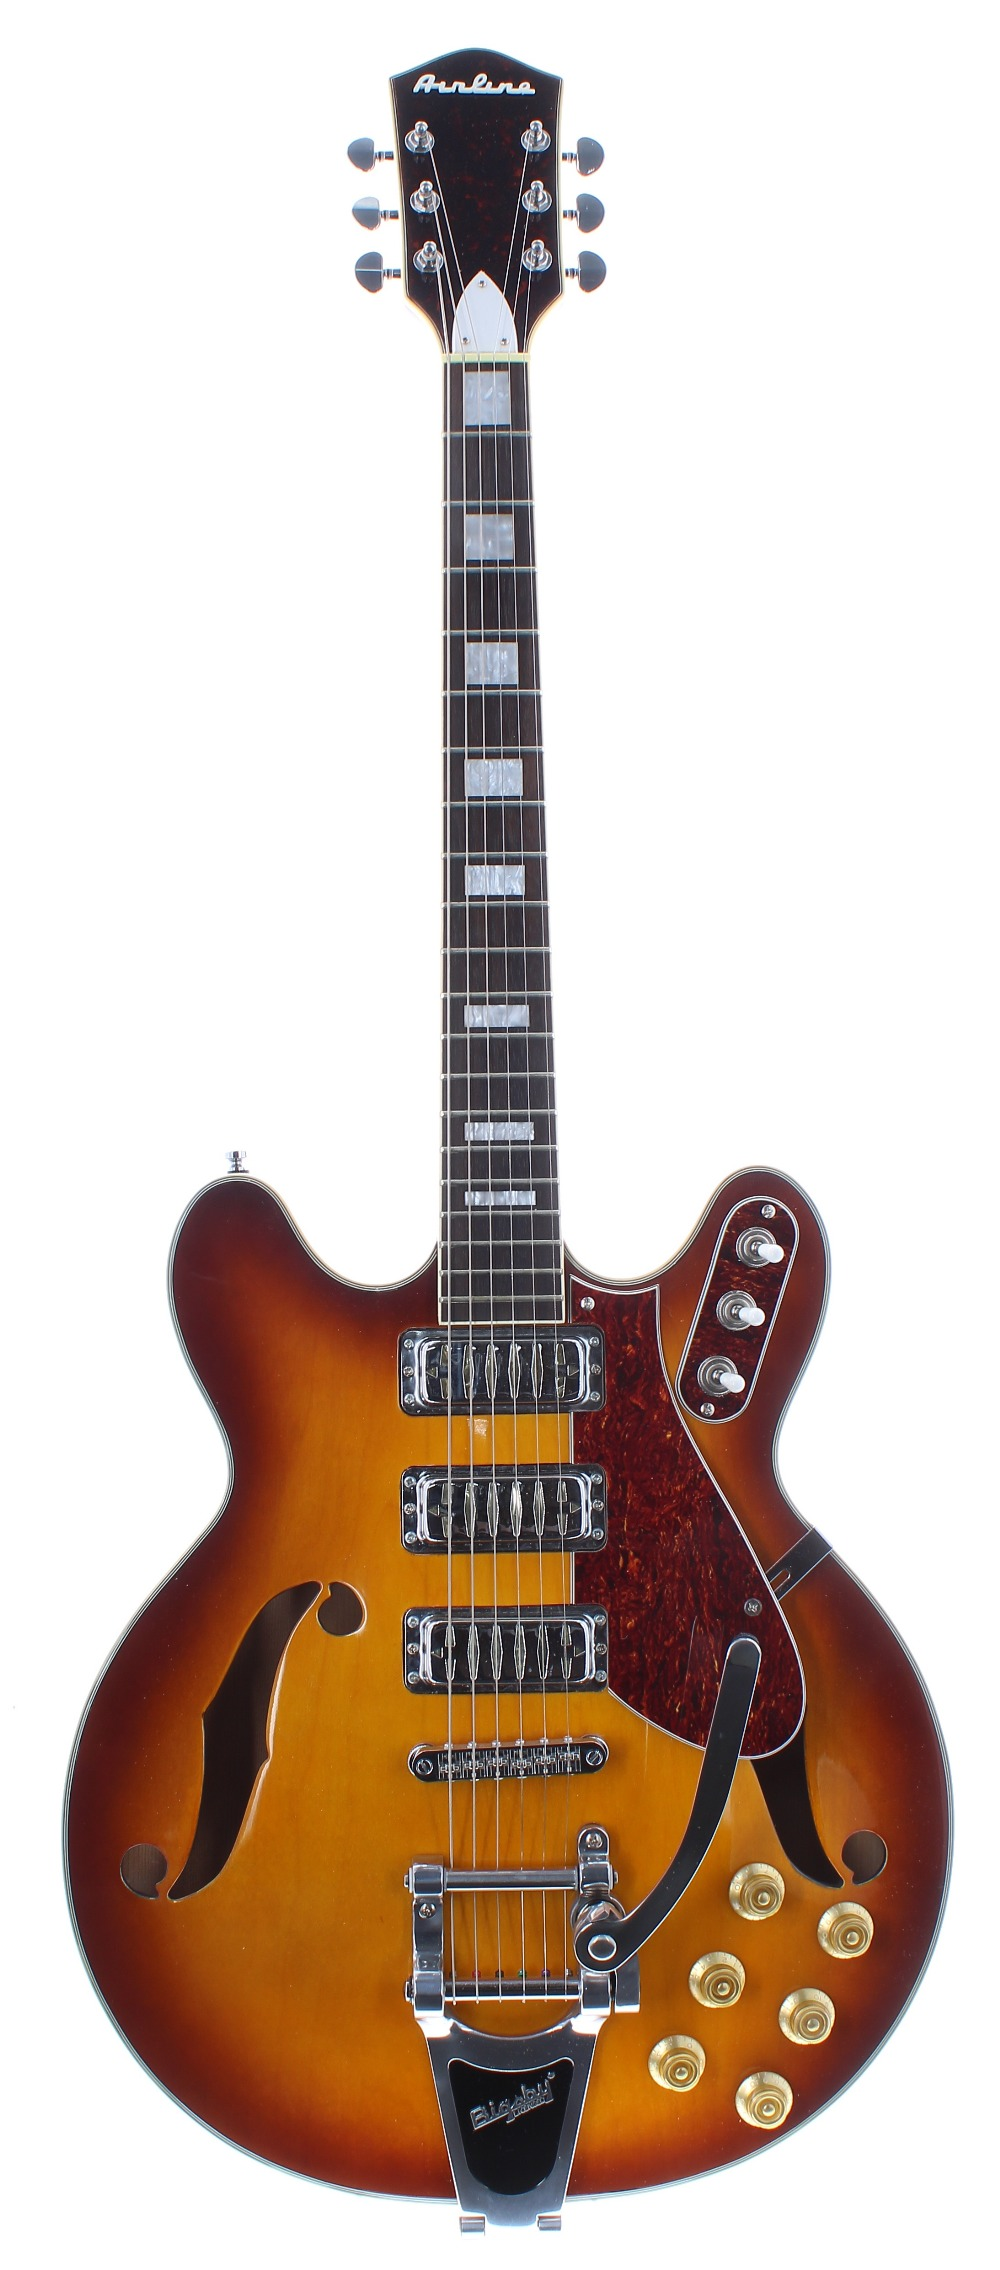 2016 Eastwood Airline H78 semi-hollow body electric guitar, made in China, ser. no. 16xxxxx7;